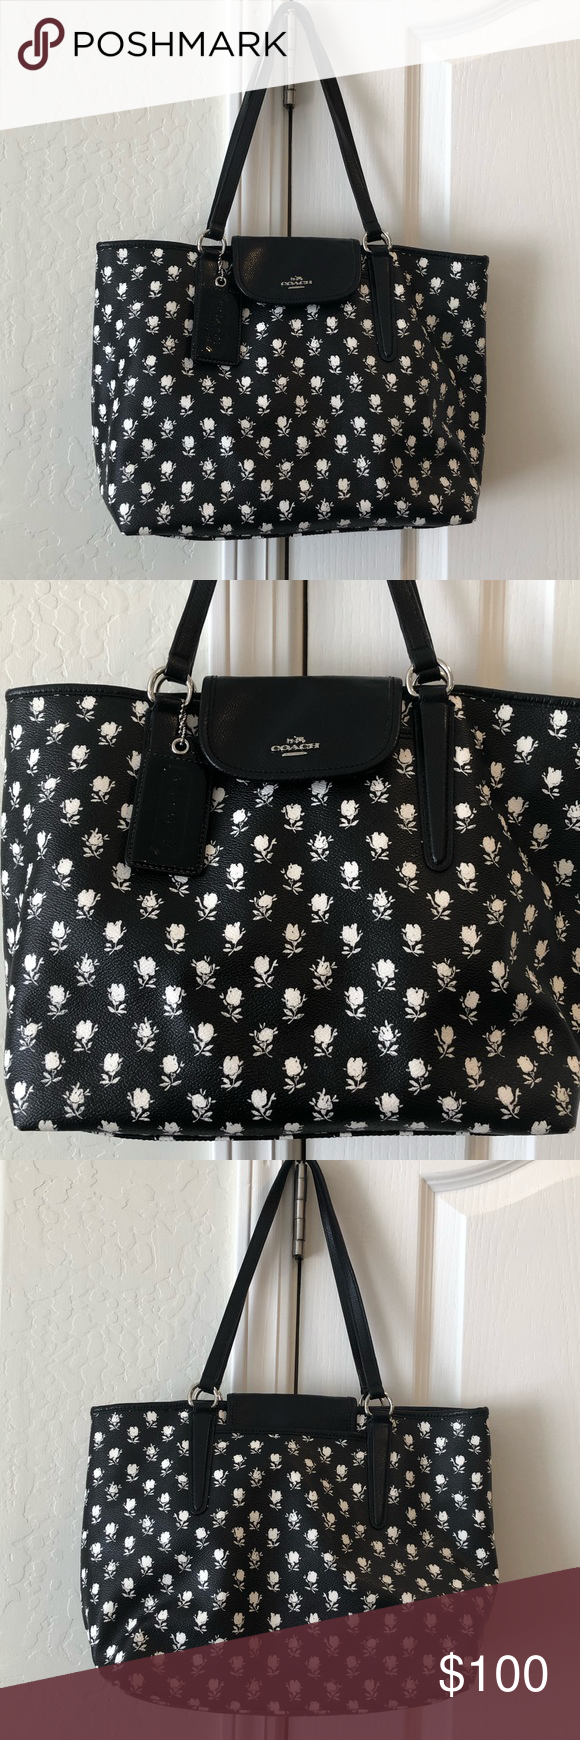 Coach Black White Flower Tote Authentic Coach Tote Black With